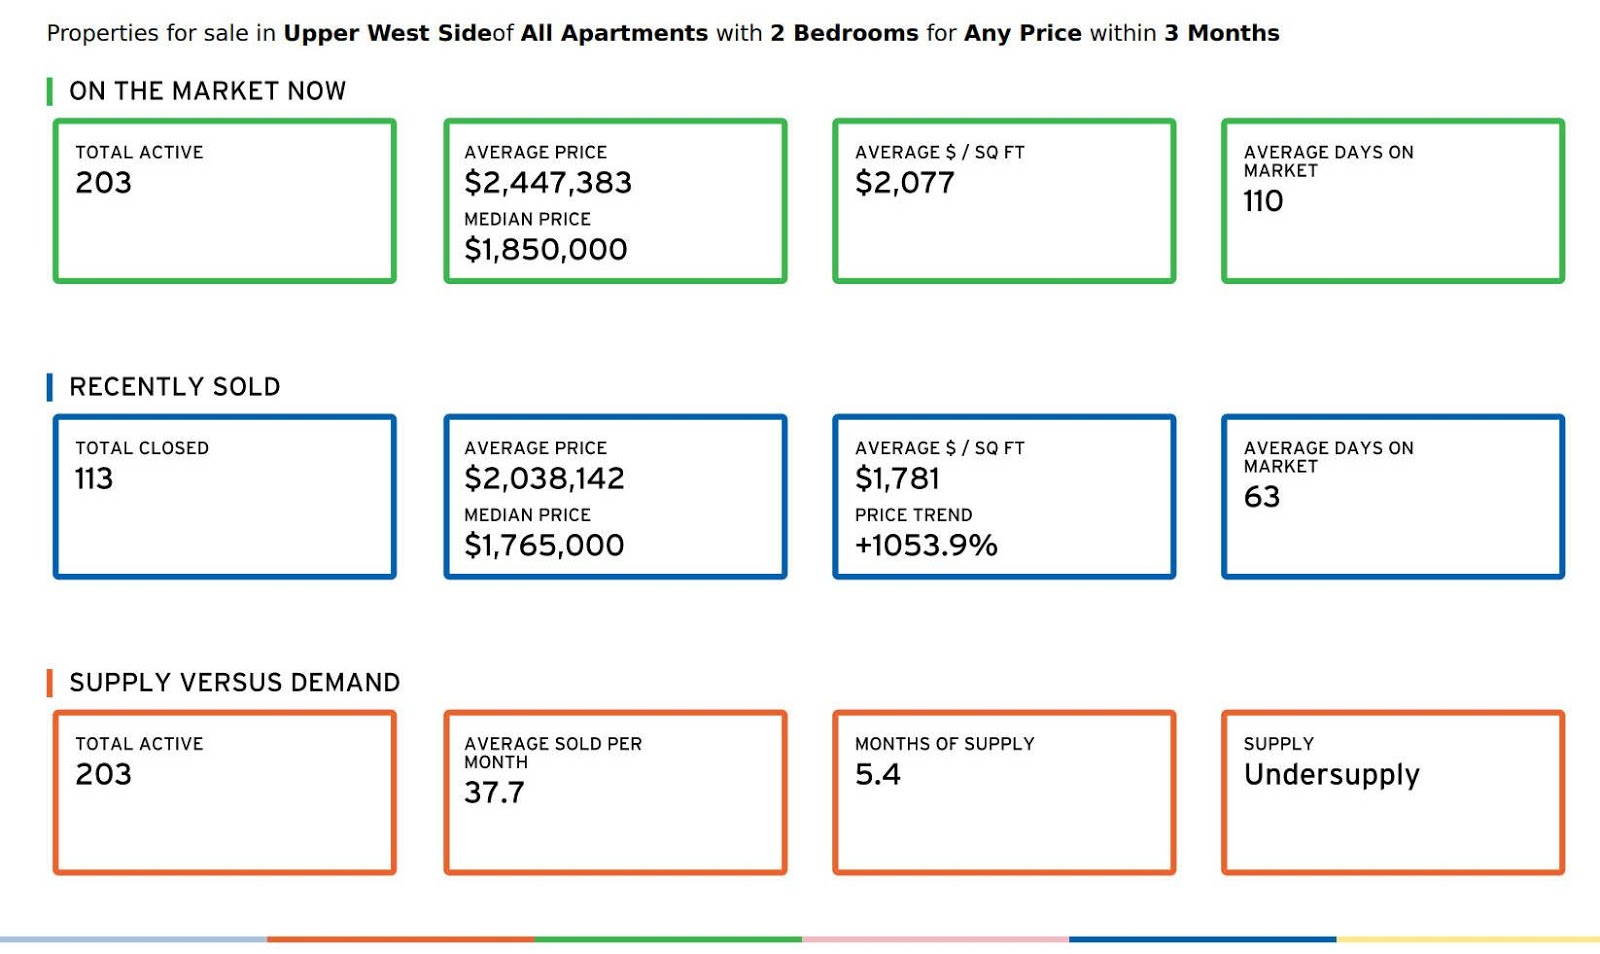 Condos There Are Currently 100 Two Bedroom Available On The Upper West Side Of Manhattan Average Price